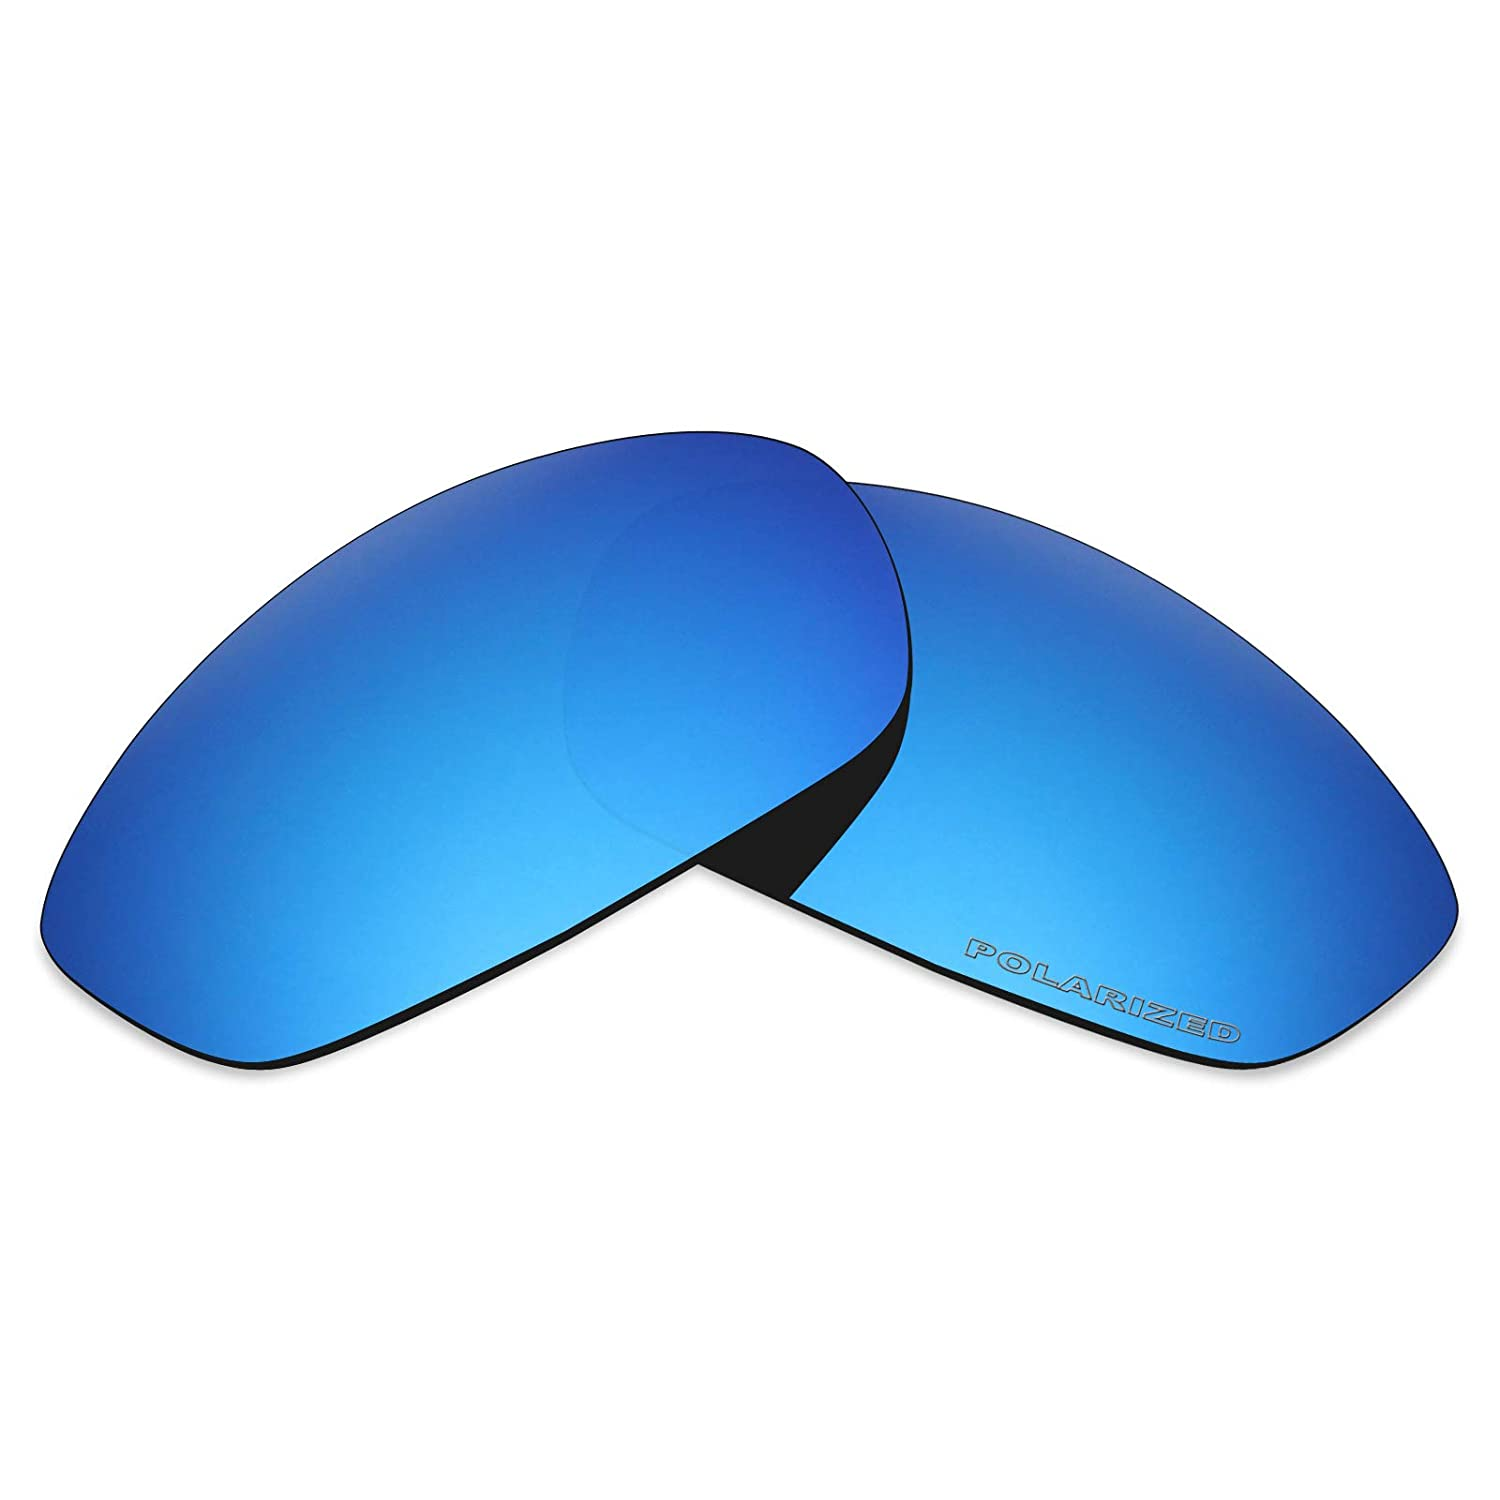 a186f55b9f6d Amazon.com: Mryok+ 2 Pair Replacement Lenses for Oakley Whisker Sunglass -  Eclipse Grey Photochromic/Ice Blue: Sports & Outdoors